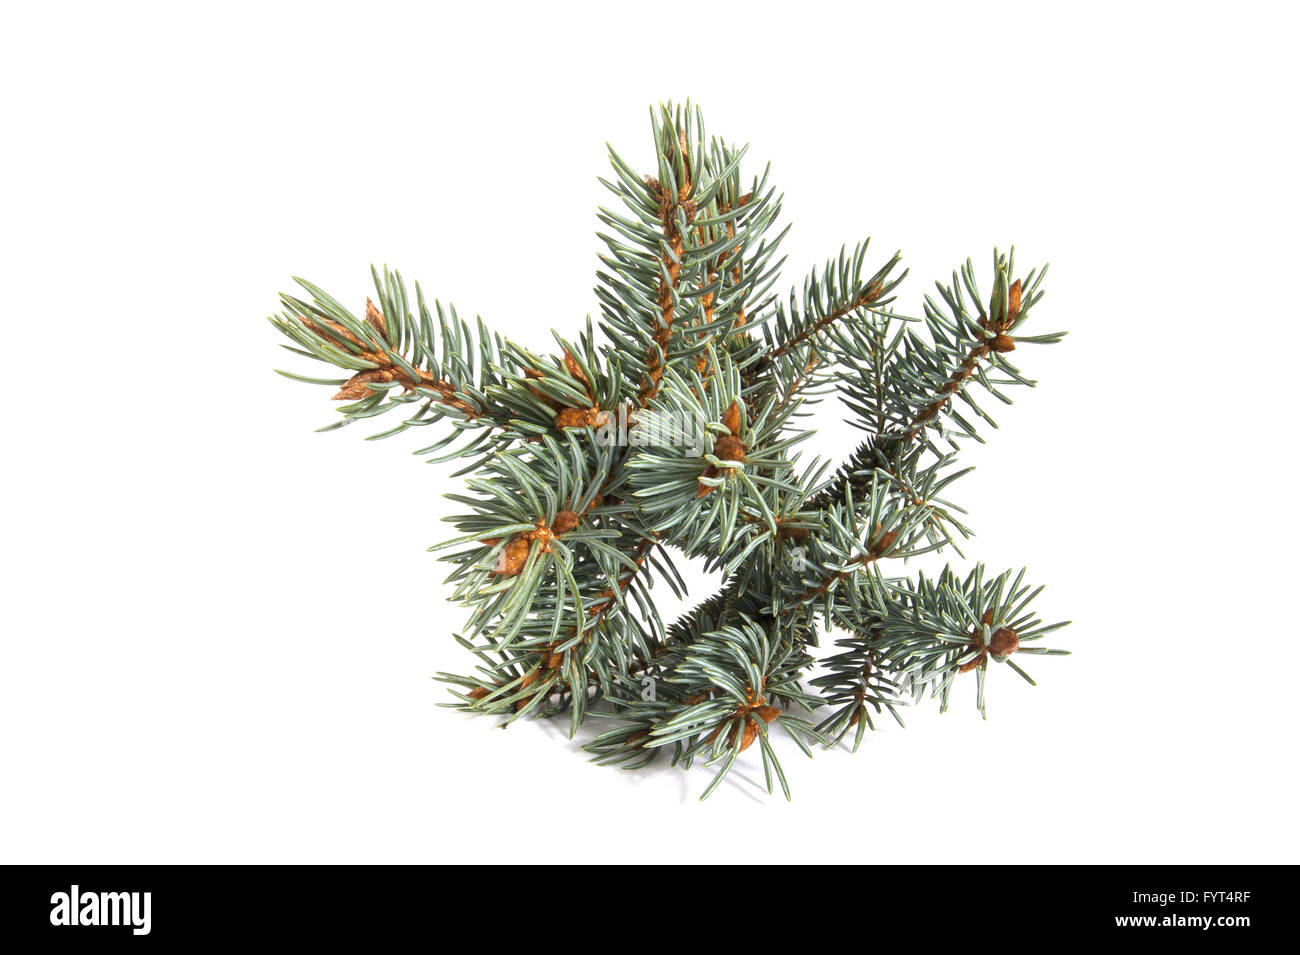 The branch of blue spruce. - Stock Image